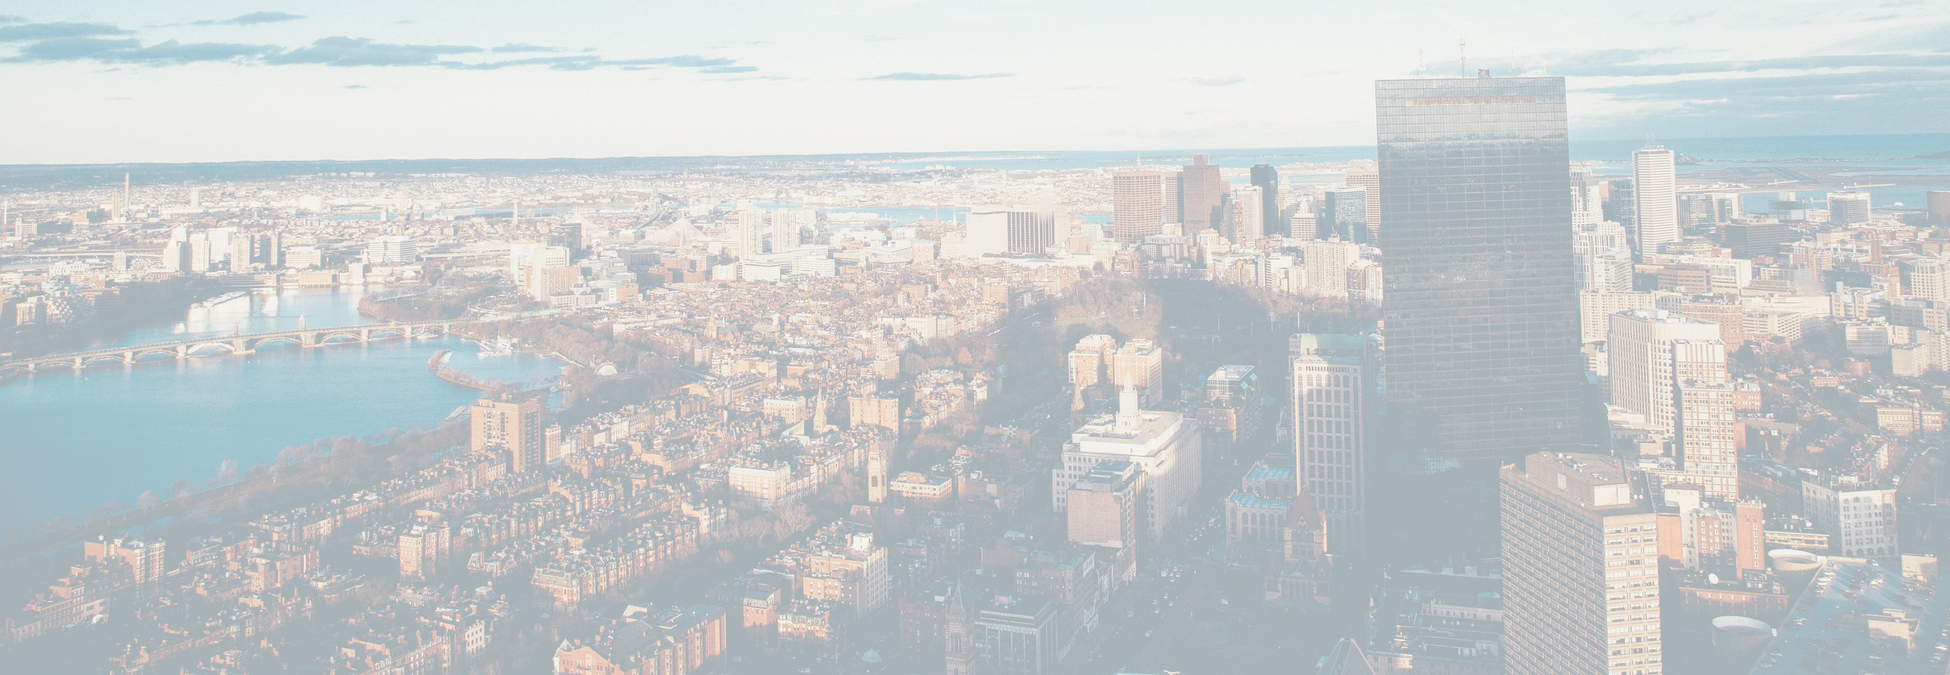 A faded out photo of Boston with sky scrapers in the foreground and water in the background.